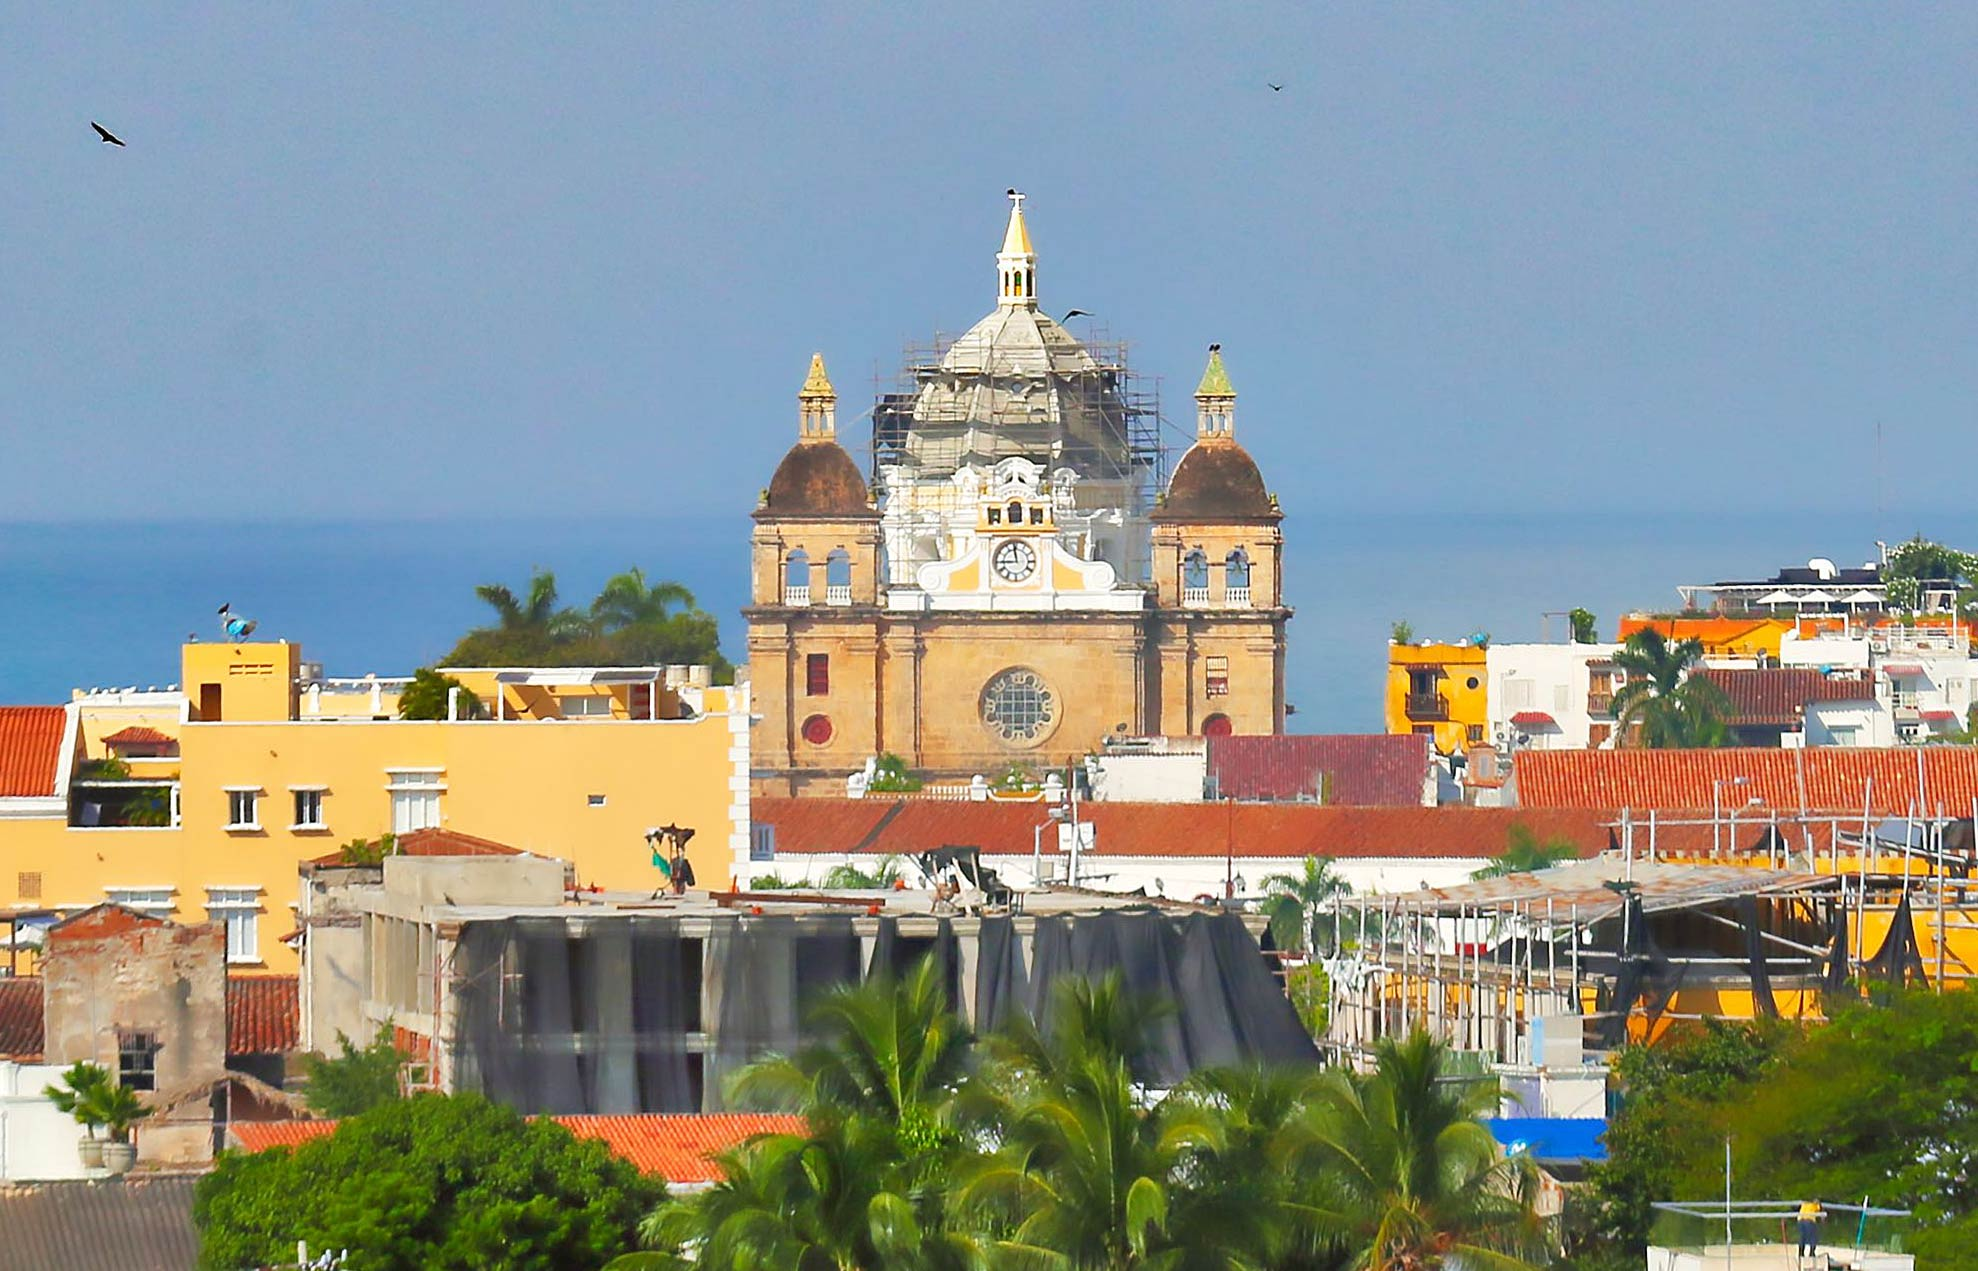 Old Cartagena skyline detail